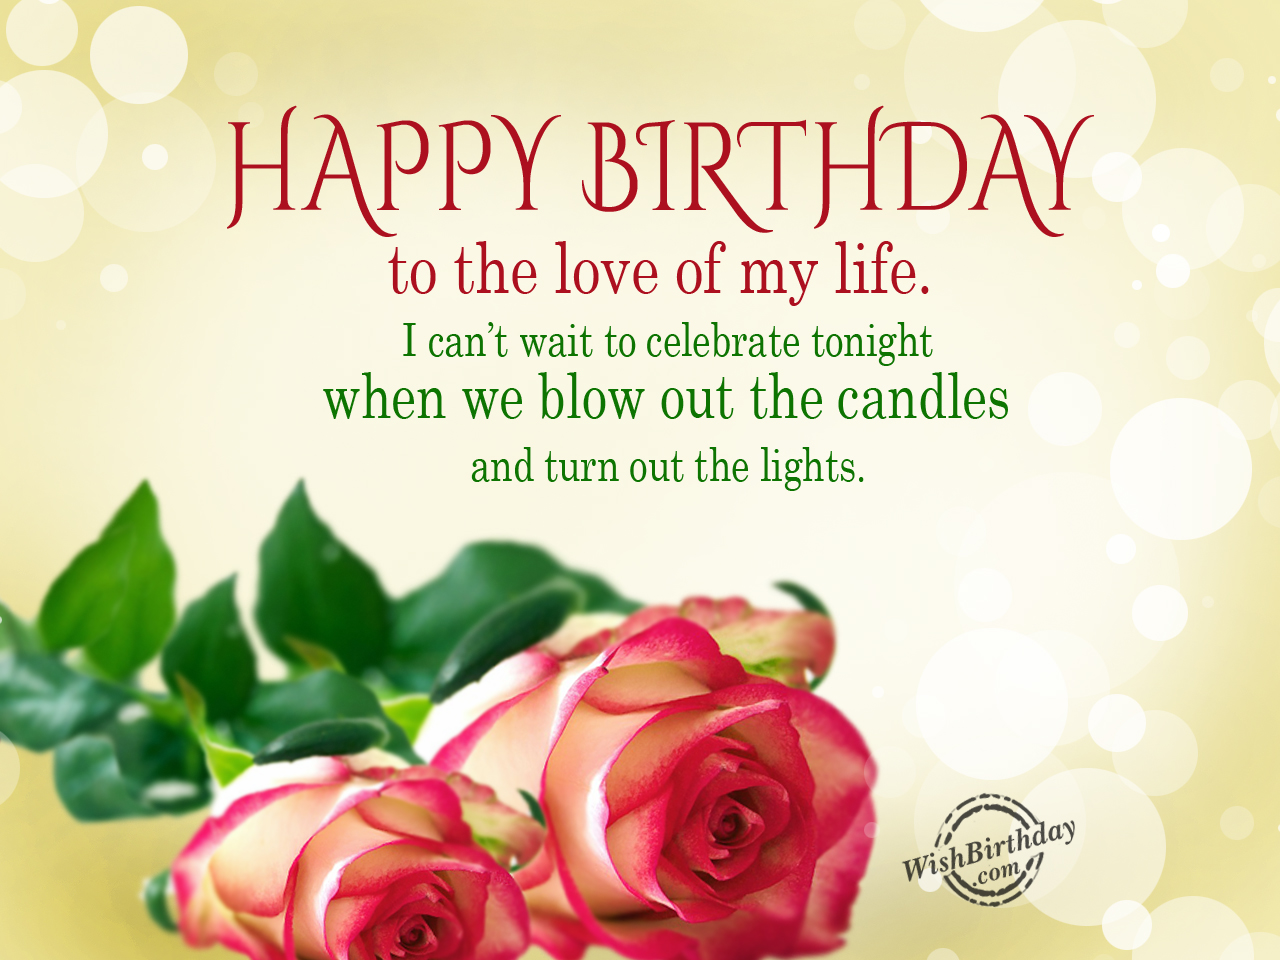 birthday message for love of my life ; Happy-Birthday-To-The-Love-Of-My-Life-wb0160449